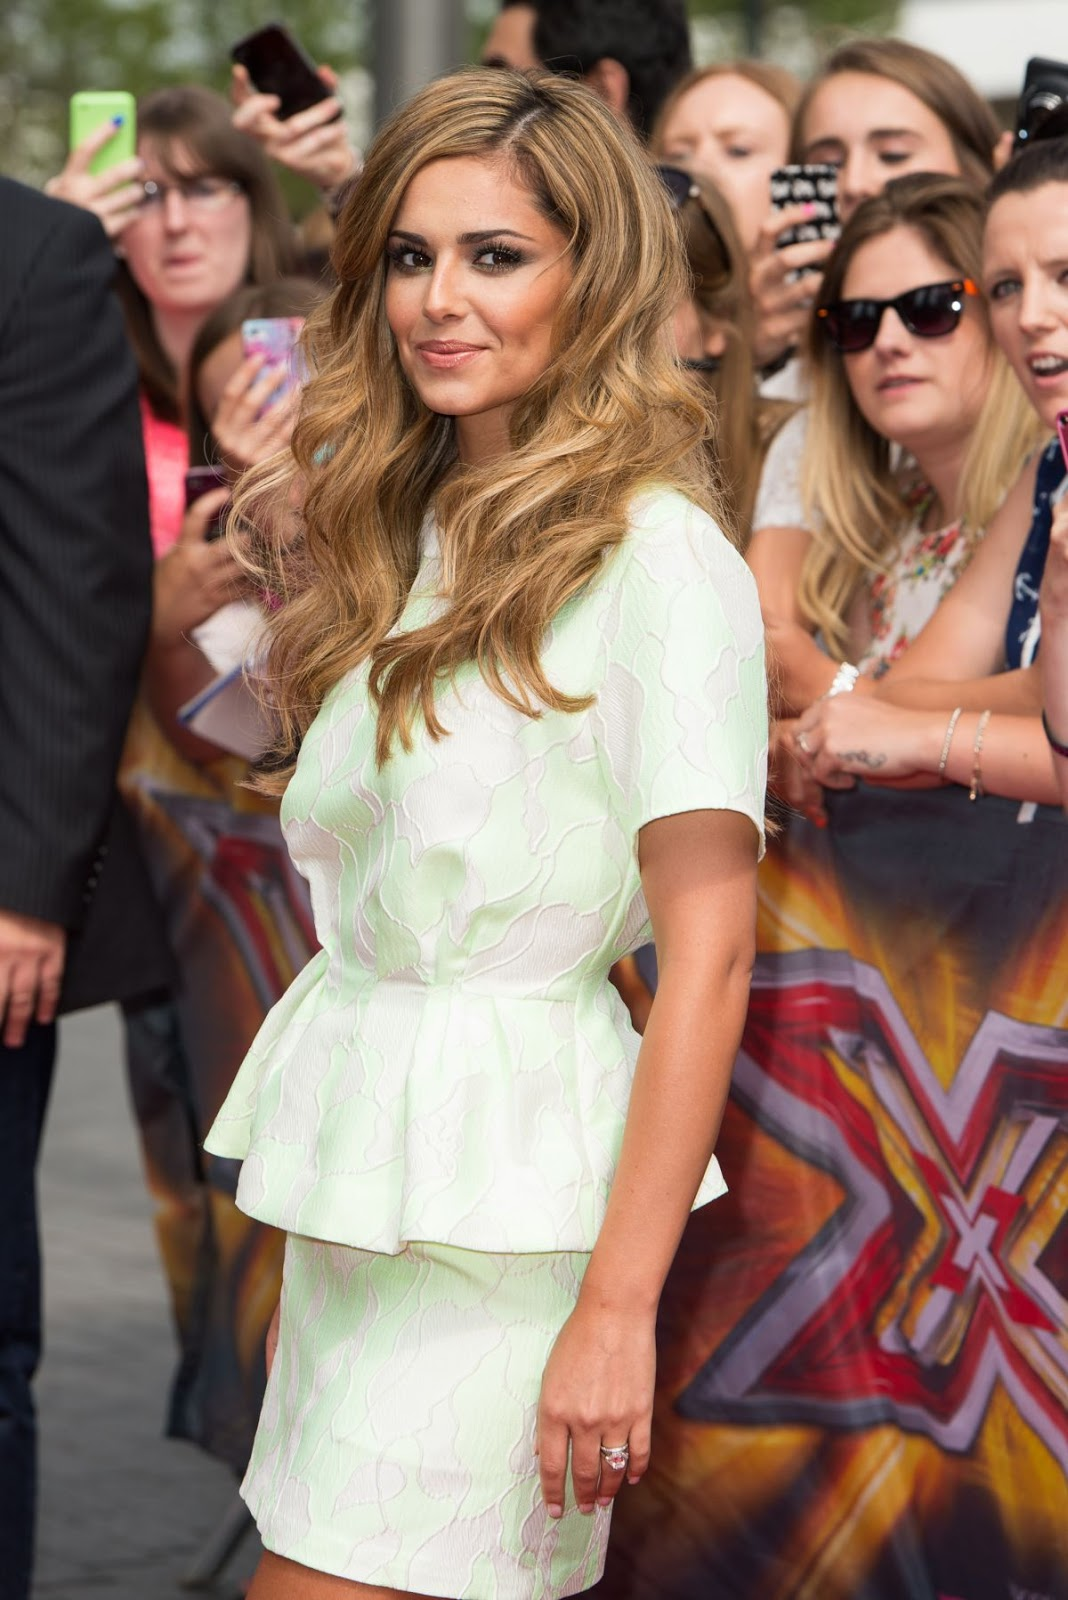 Photos & Wallpapers of Cheryl Cole at X Factor Auditions in London